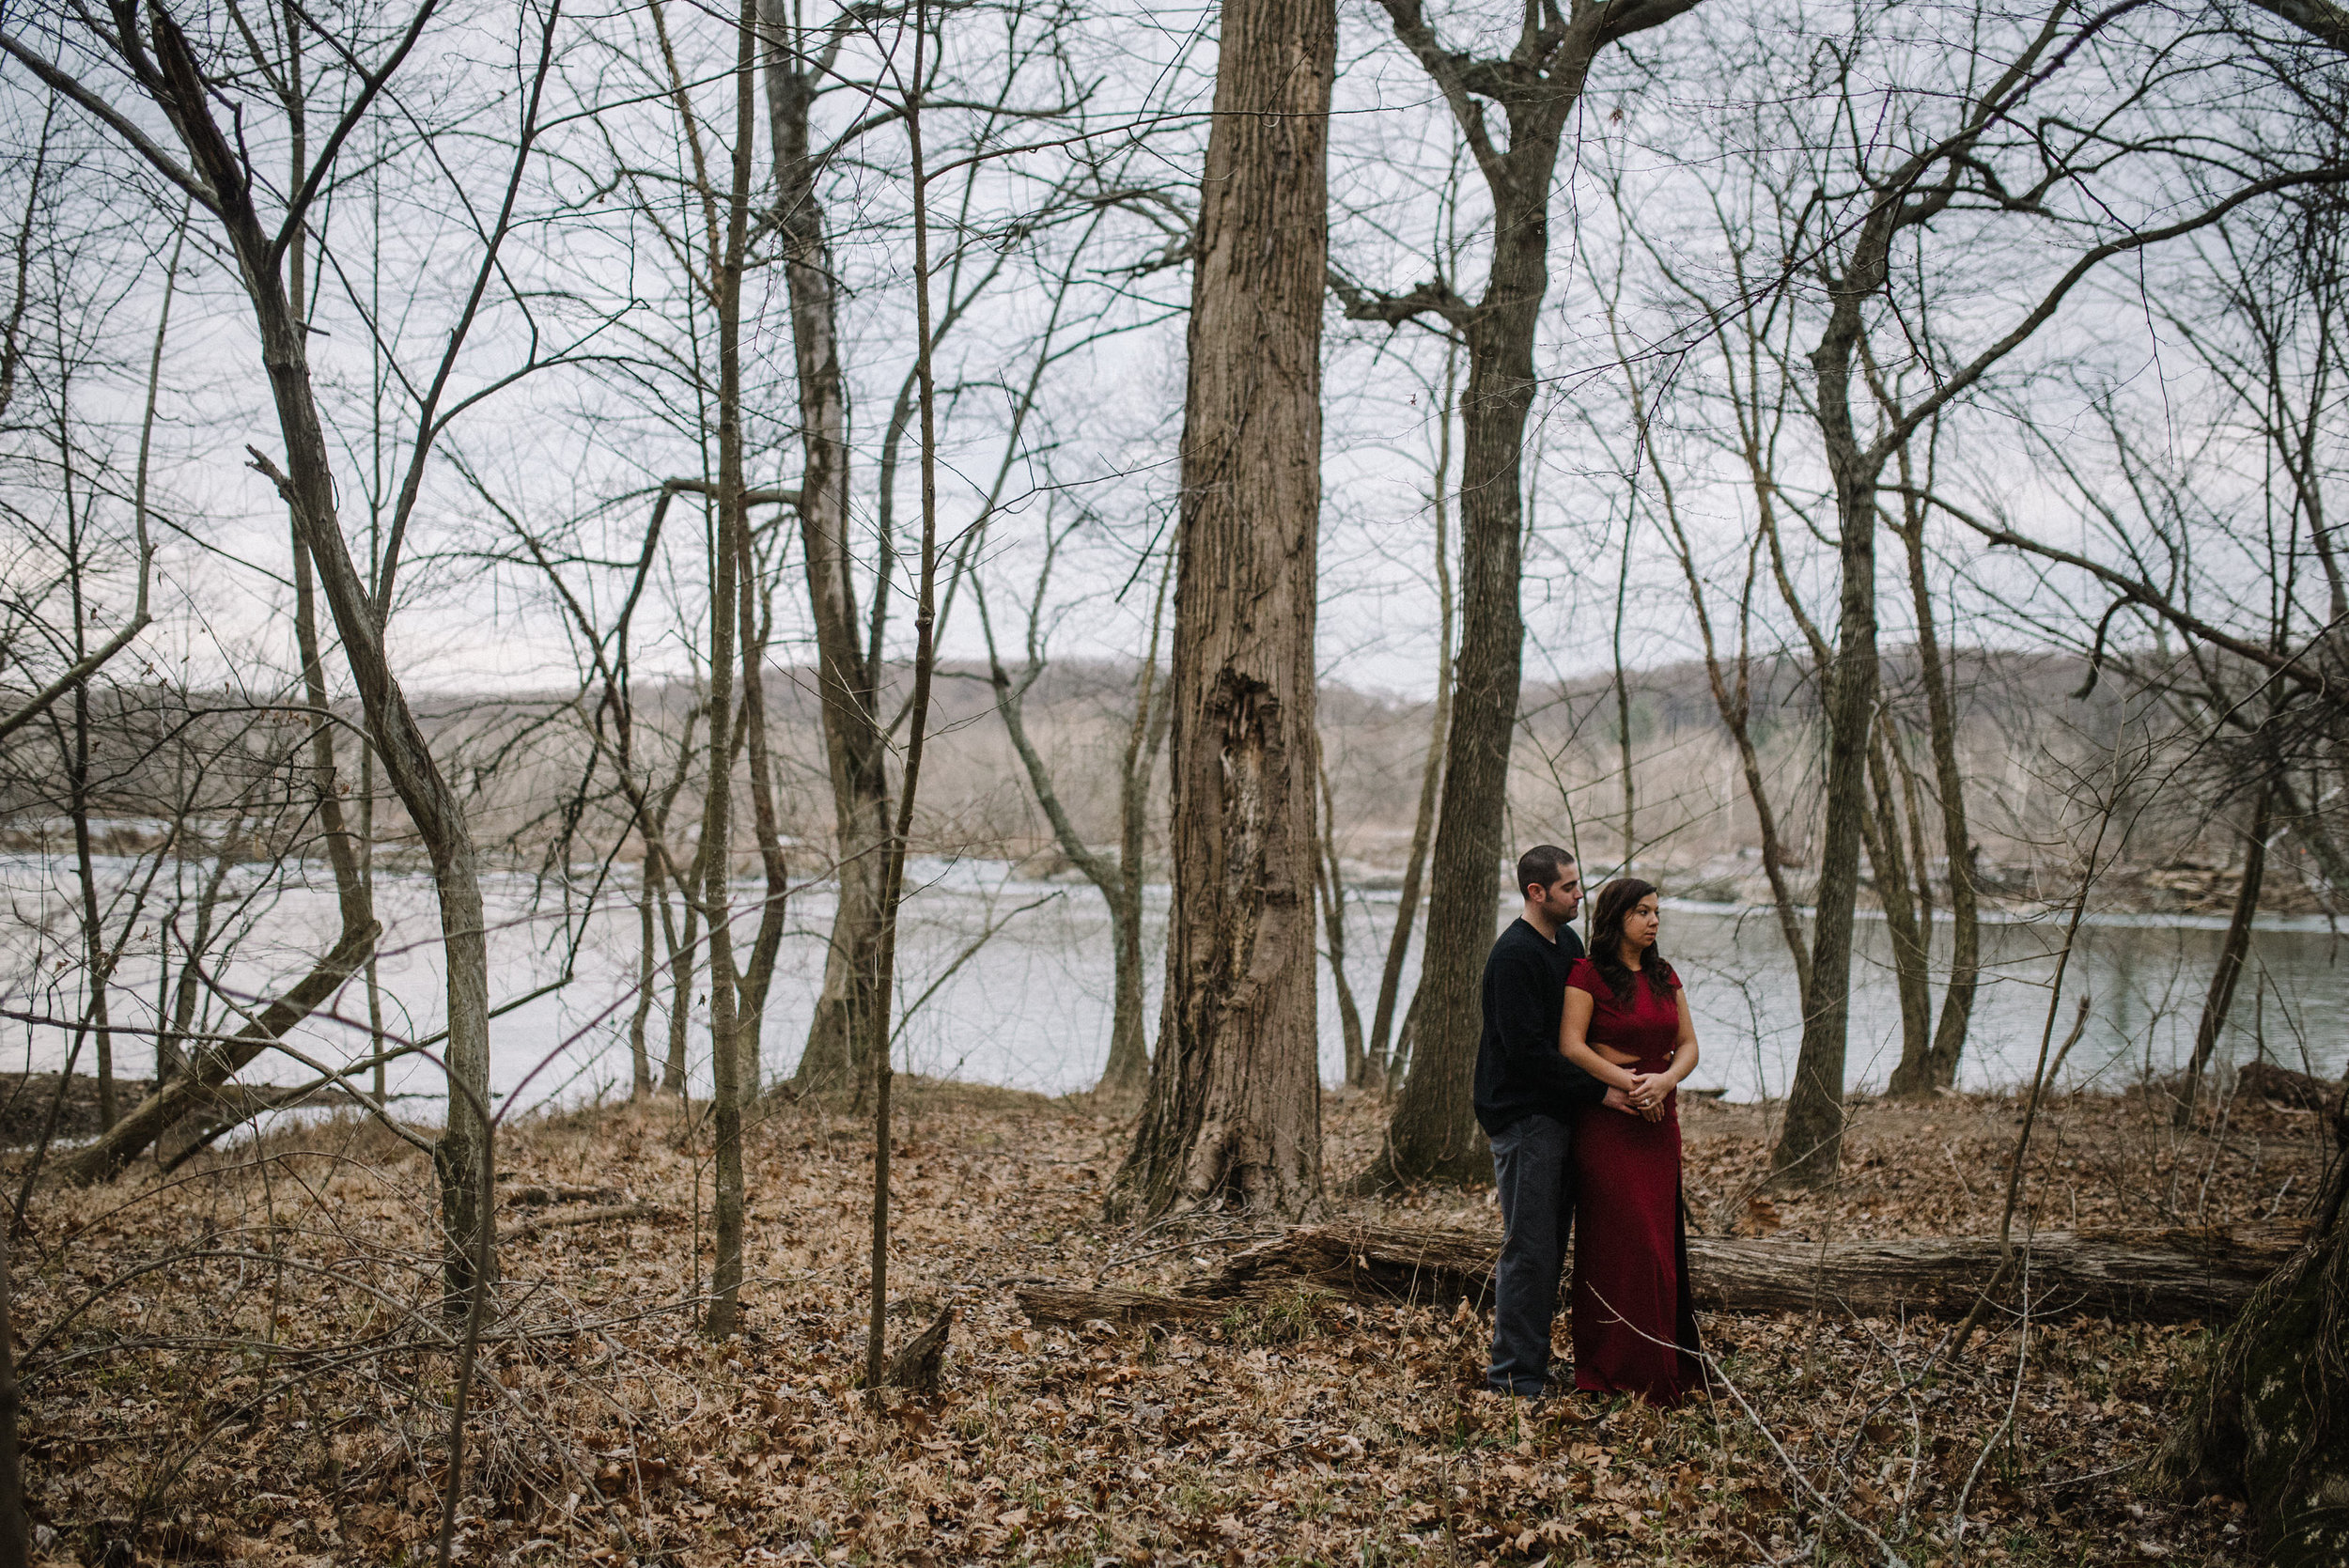 dramatic portrait from an engagement session in great falls park va